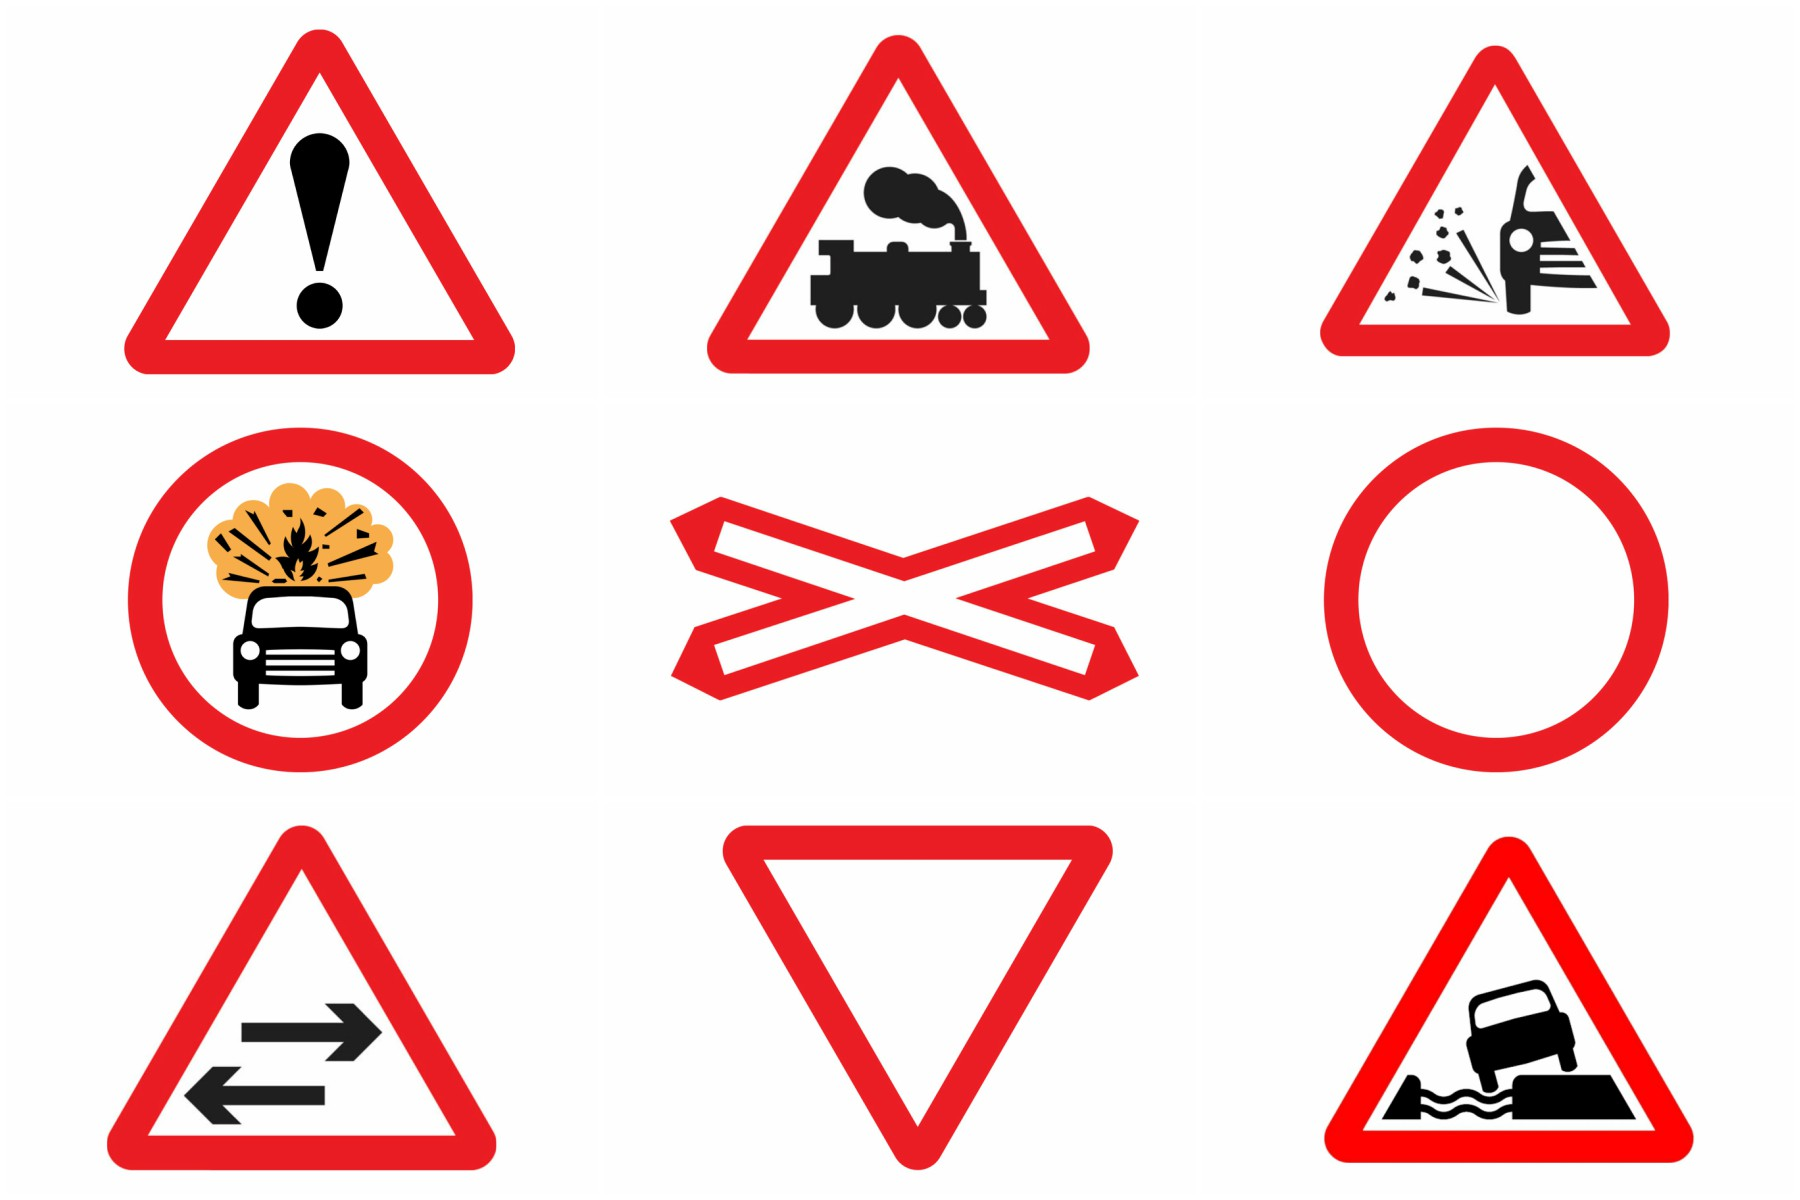 Most Drivers Unable To Identify Road Signs Automotive Blog